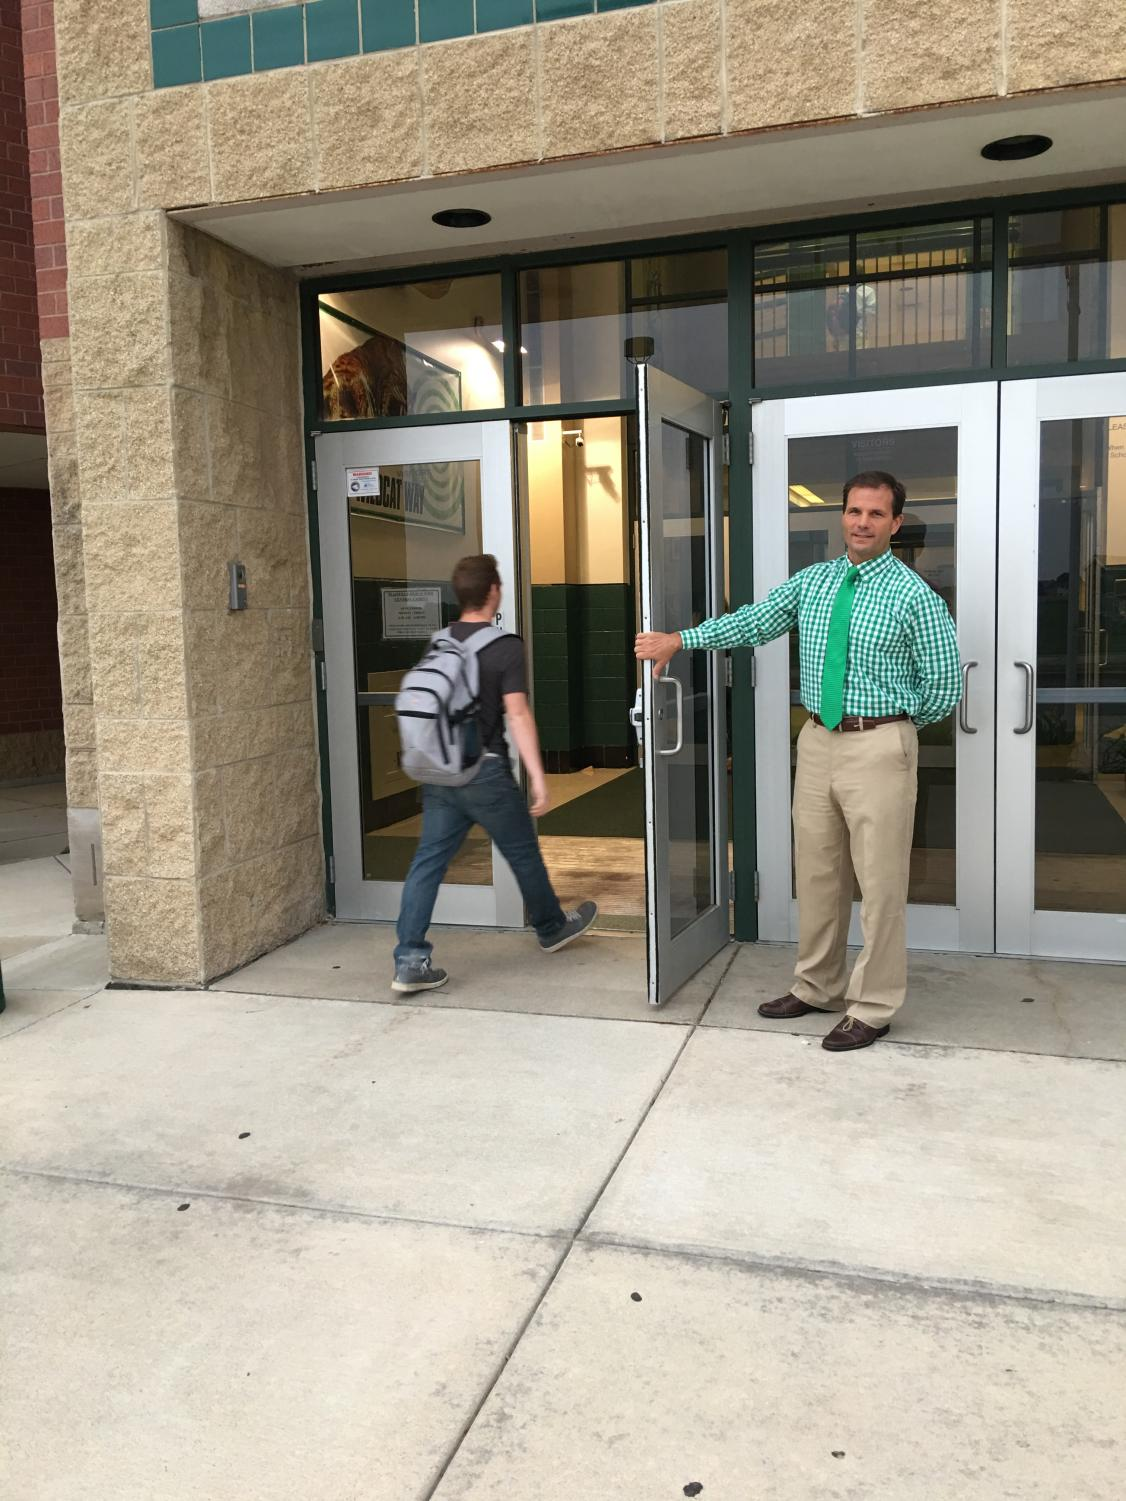 Principal Dave Stephens greets students to start his day. Many appreciate the little things Stephens does to improve the school's atmosphere.